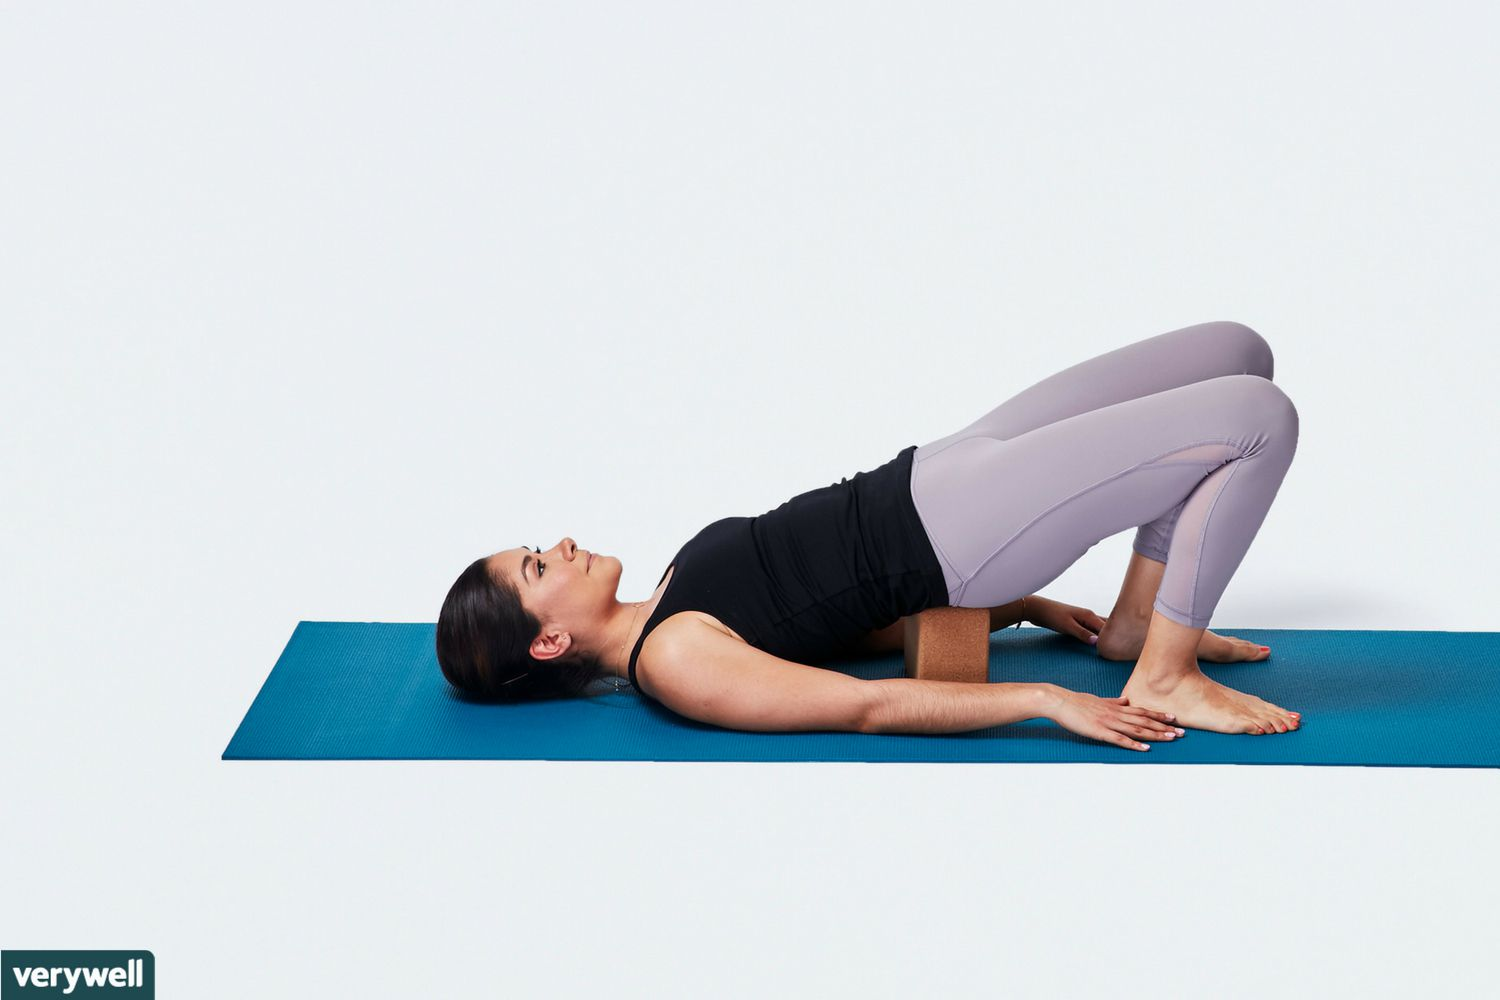 Get Tips On Cool Down Poses To Add To Your Yoga Practice For Added Relaxation And Increased Flexibility Cool Yoga Poses Chair Pose Yoga Home Yoga Practice